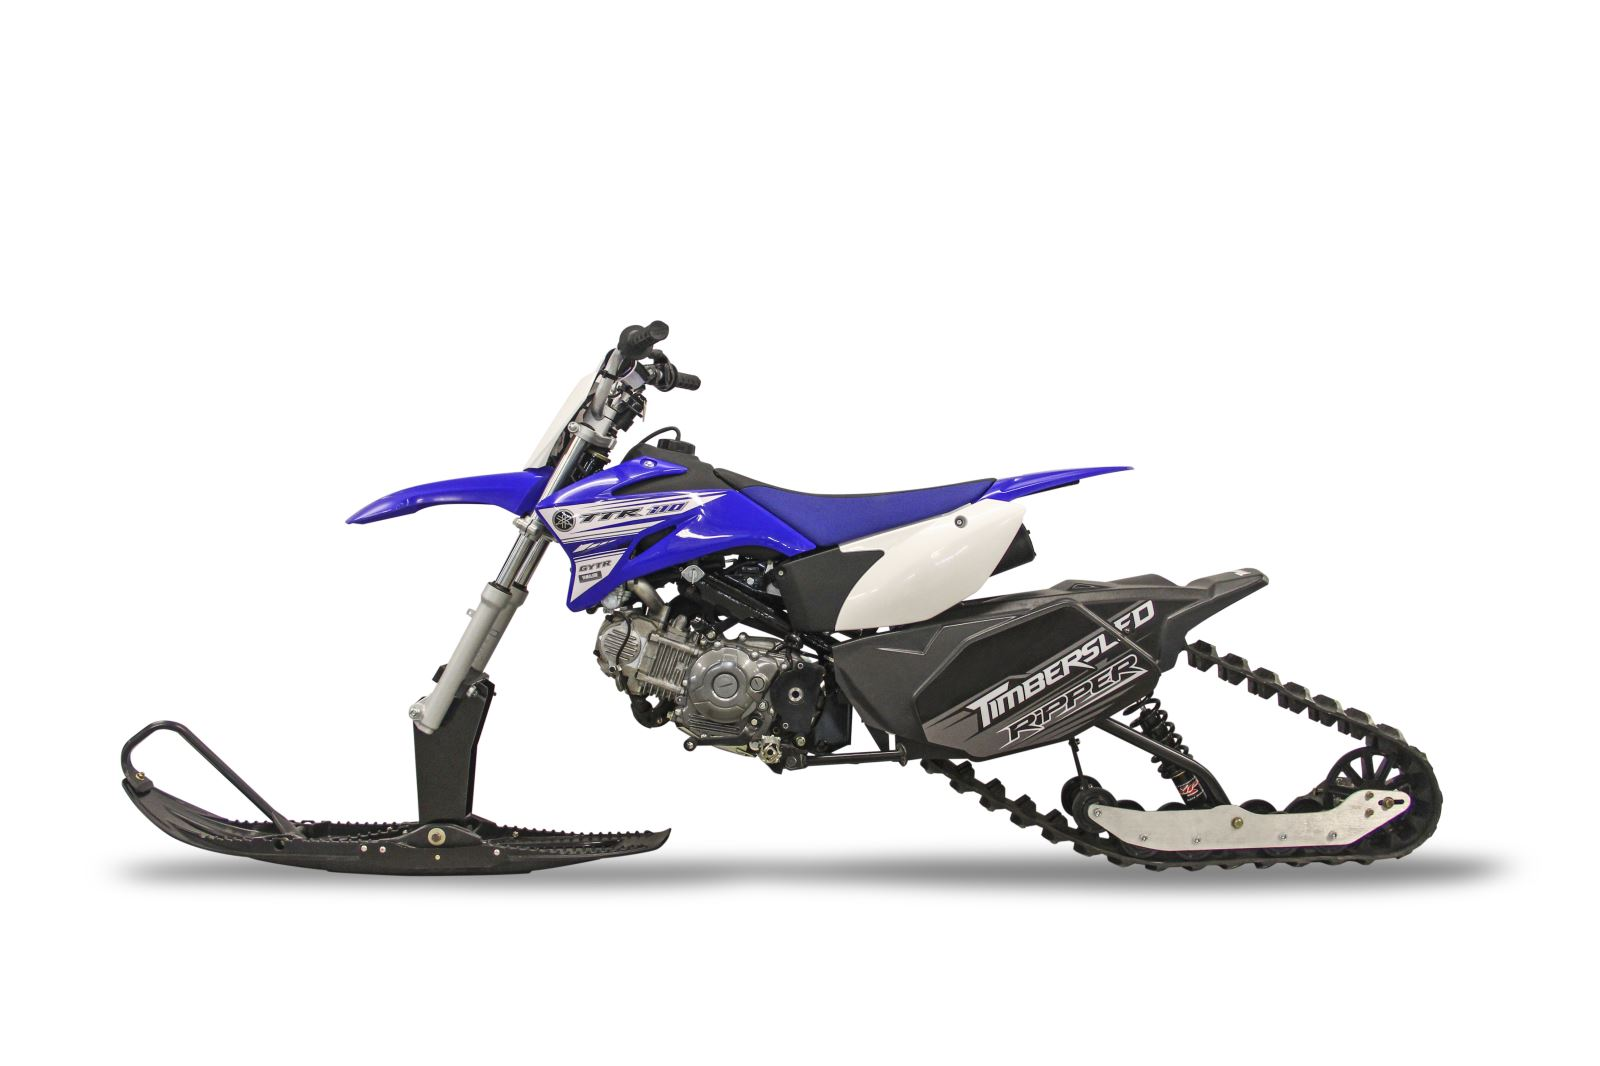 new timbersled st 90 ripper systems convert 110cc dirt bikes into snow bikes for year